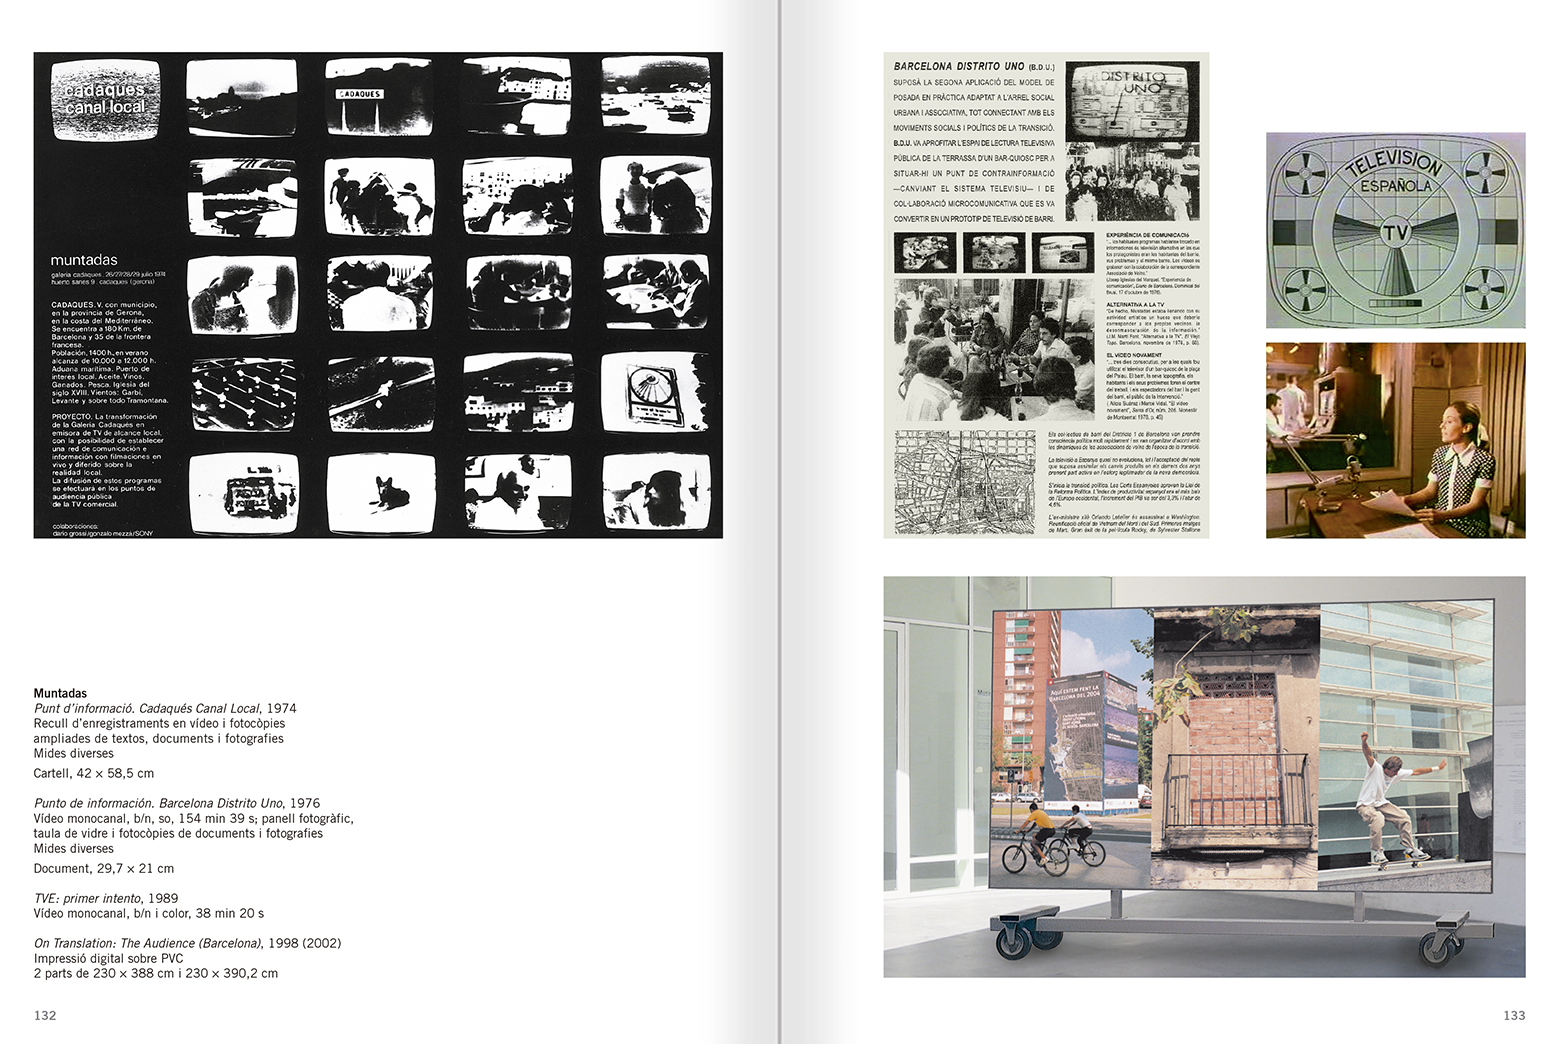 Selection from the catalogue 'Relational Objects. MACBA Collection 2002-07', pages 132 and 133